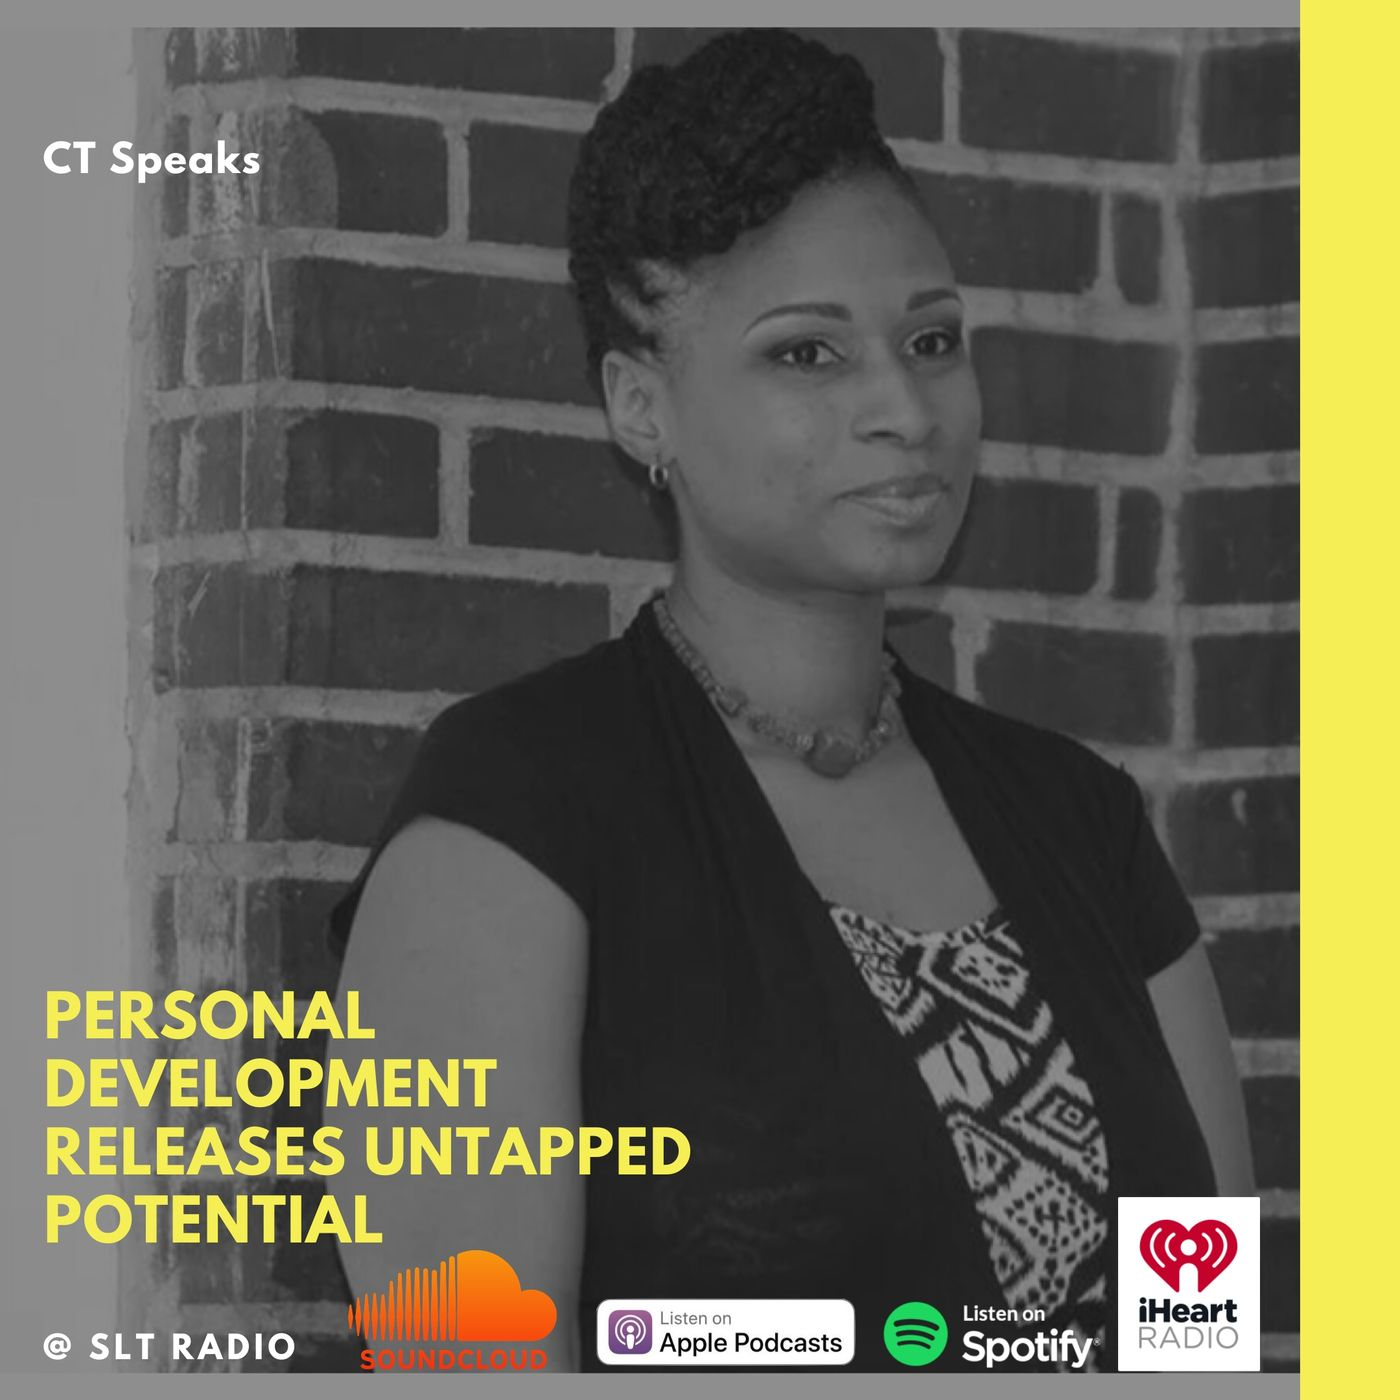 6.9 - GM2Leader - Personal Development Releases Untapped Potential - CT Speaks (Host)